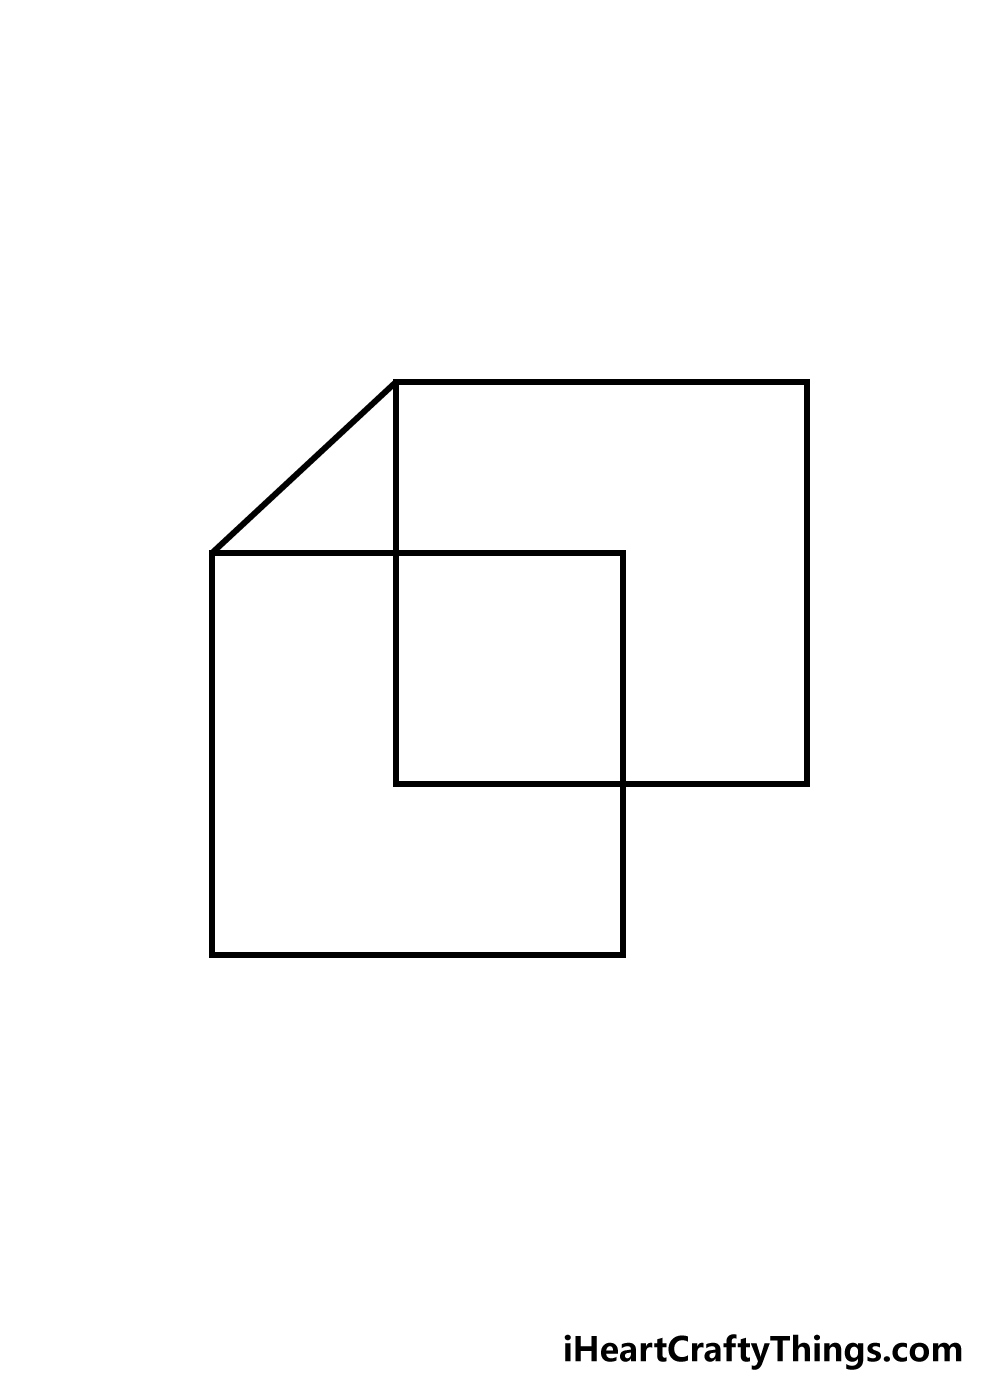 cube drawing step 3